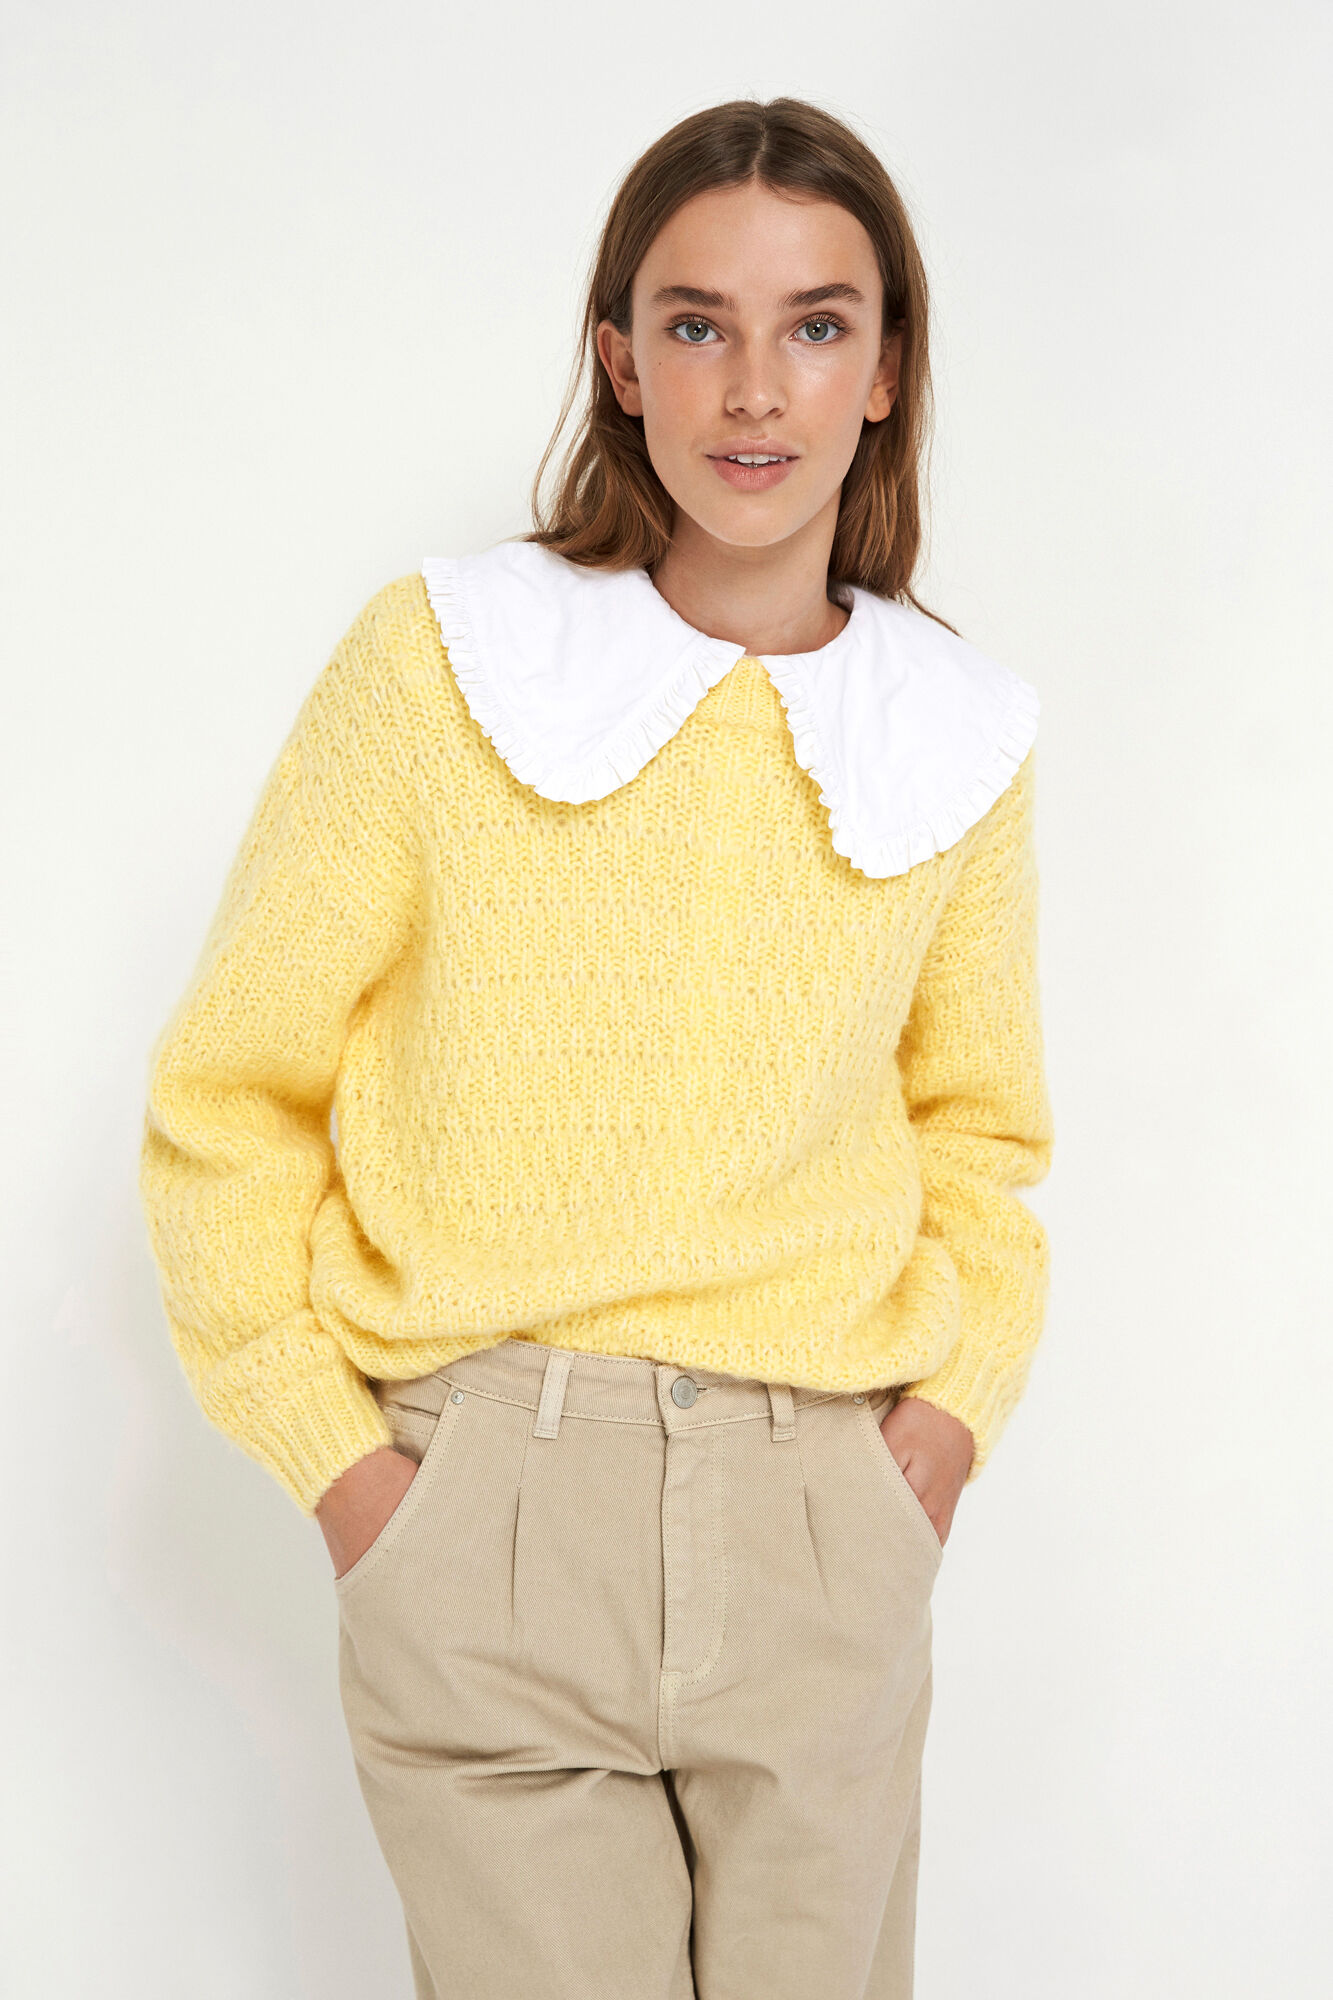 ENBUCKTHORN LS KNIT 5237